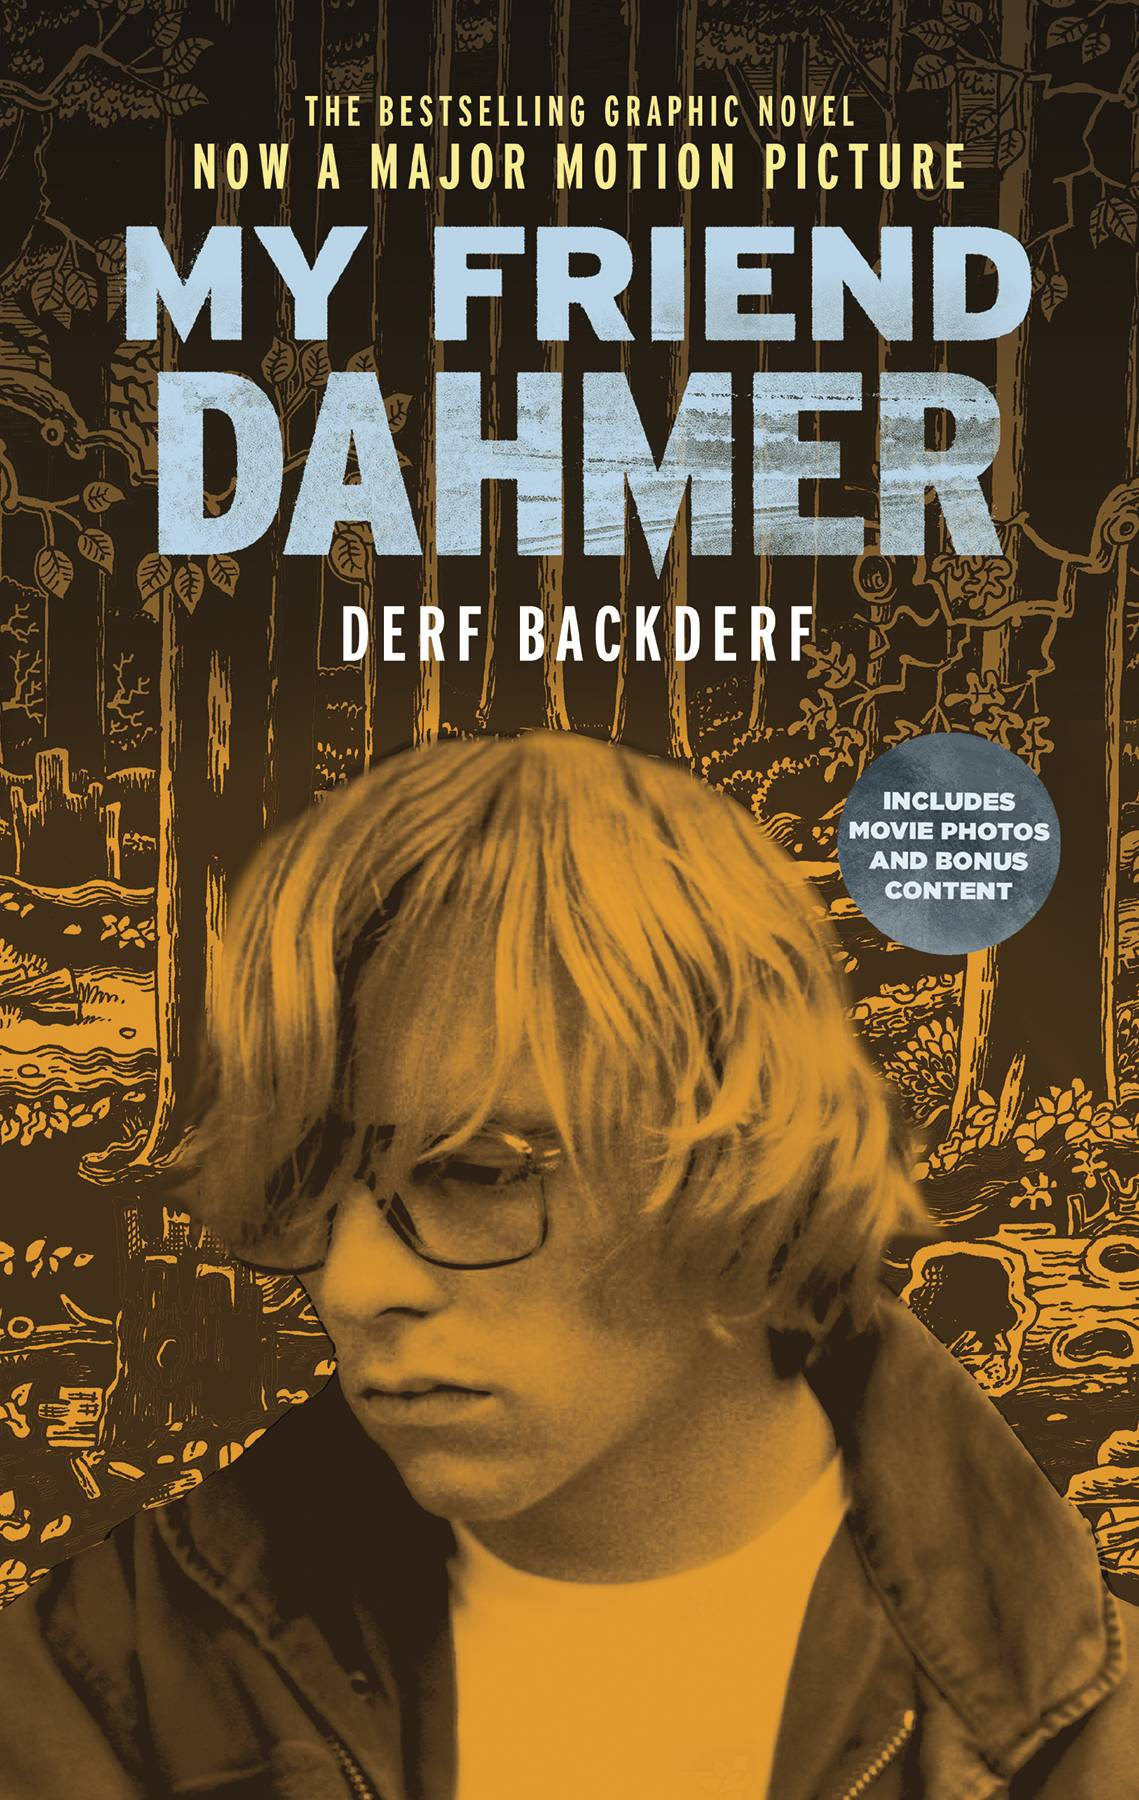 My Friend Dahmer GN - Mike's PickLike a mash up of From Hell and DAZED AND CONFUSED, Derf Backderf's (Trashed) tale of his adolescent pseudo friendship with the notorious serial killer Jeffrey Dahmer is both heartbreaking and horrifying.  While Dahmer is the central figure in the book, he is also just a background character in Derf's own life story.  Had he not gone on to commit such grisly atrocities, he would've merely been one of those oddball outcast kids you every now and then find yourself wondering about, in the cascading years after leaving the pubescent sausage grinder of high school behind.  Dahmer's story, compiled from Derf's own memories and surviving high school memorabilia, as well as from credible news sources such as Dahmer and Derf's hometown Akron Beacon Journal, is told using Derf's more typical middle-American experience as a sort of foil that reveals much more in hindsight.  As much as he was a monster, Dahmer was also merely human.  His parents had a troubled marriage and a bitter divorce, he had a drinking problem, he had trouble coming to terms with his sexuality, he was bullied, he had urges that he couldn't confide to anyone, etc, etc.  This could be the story of any number of teenagers, and yet it isn't.  Derf's expressive and deceptively detailed artwork is also very engaging.  It looks like a cartoonish combination of Charles Burns and Robert Crumb.  Though the story is obviously a very personal one, the artwork being so unique intensified this feeling to a massive degree.  All told, this is a gorgeous book, despite the nature of the narrative.  My Friend Dahmer contains horror, but it is not a